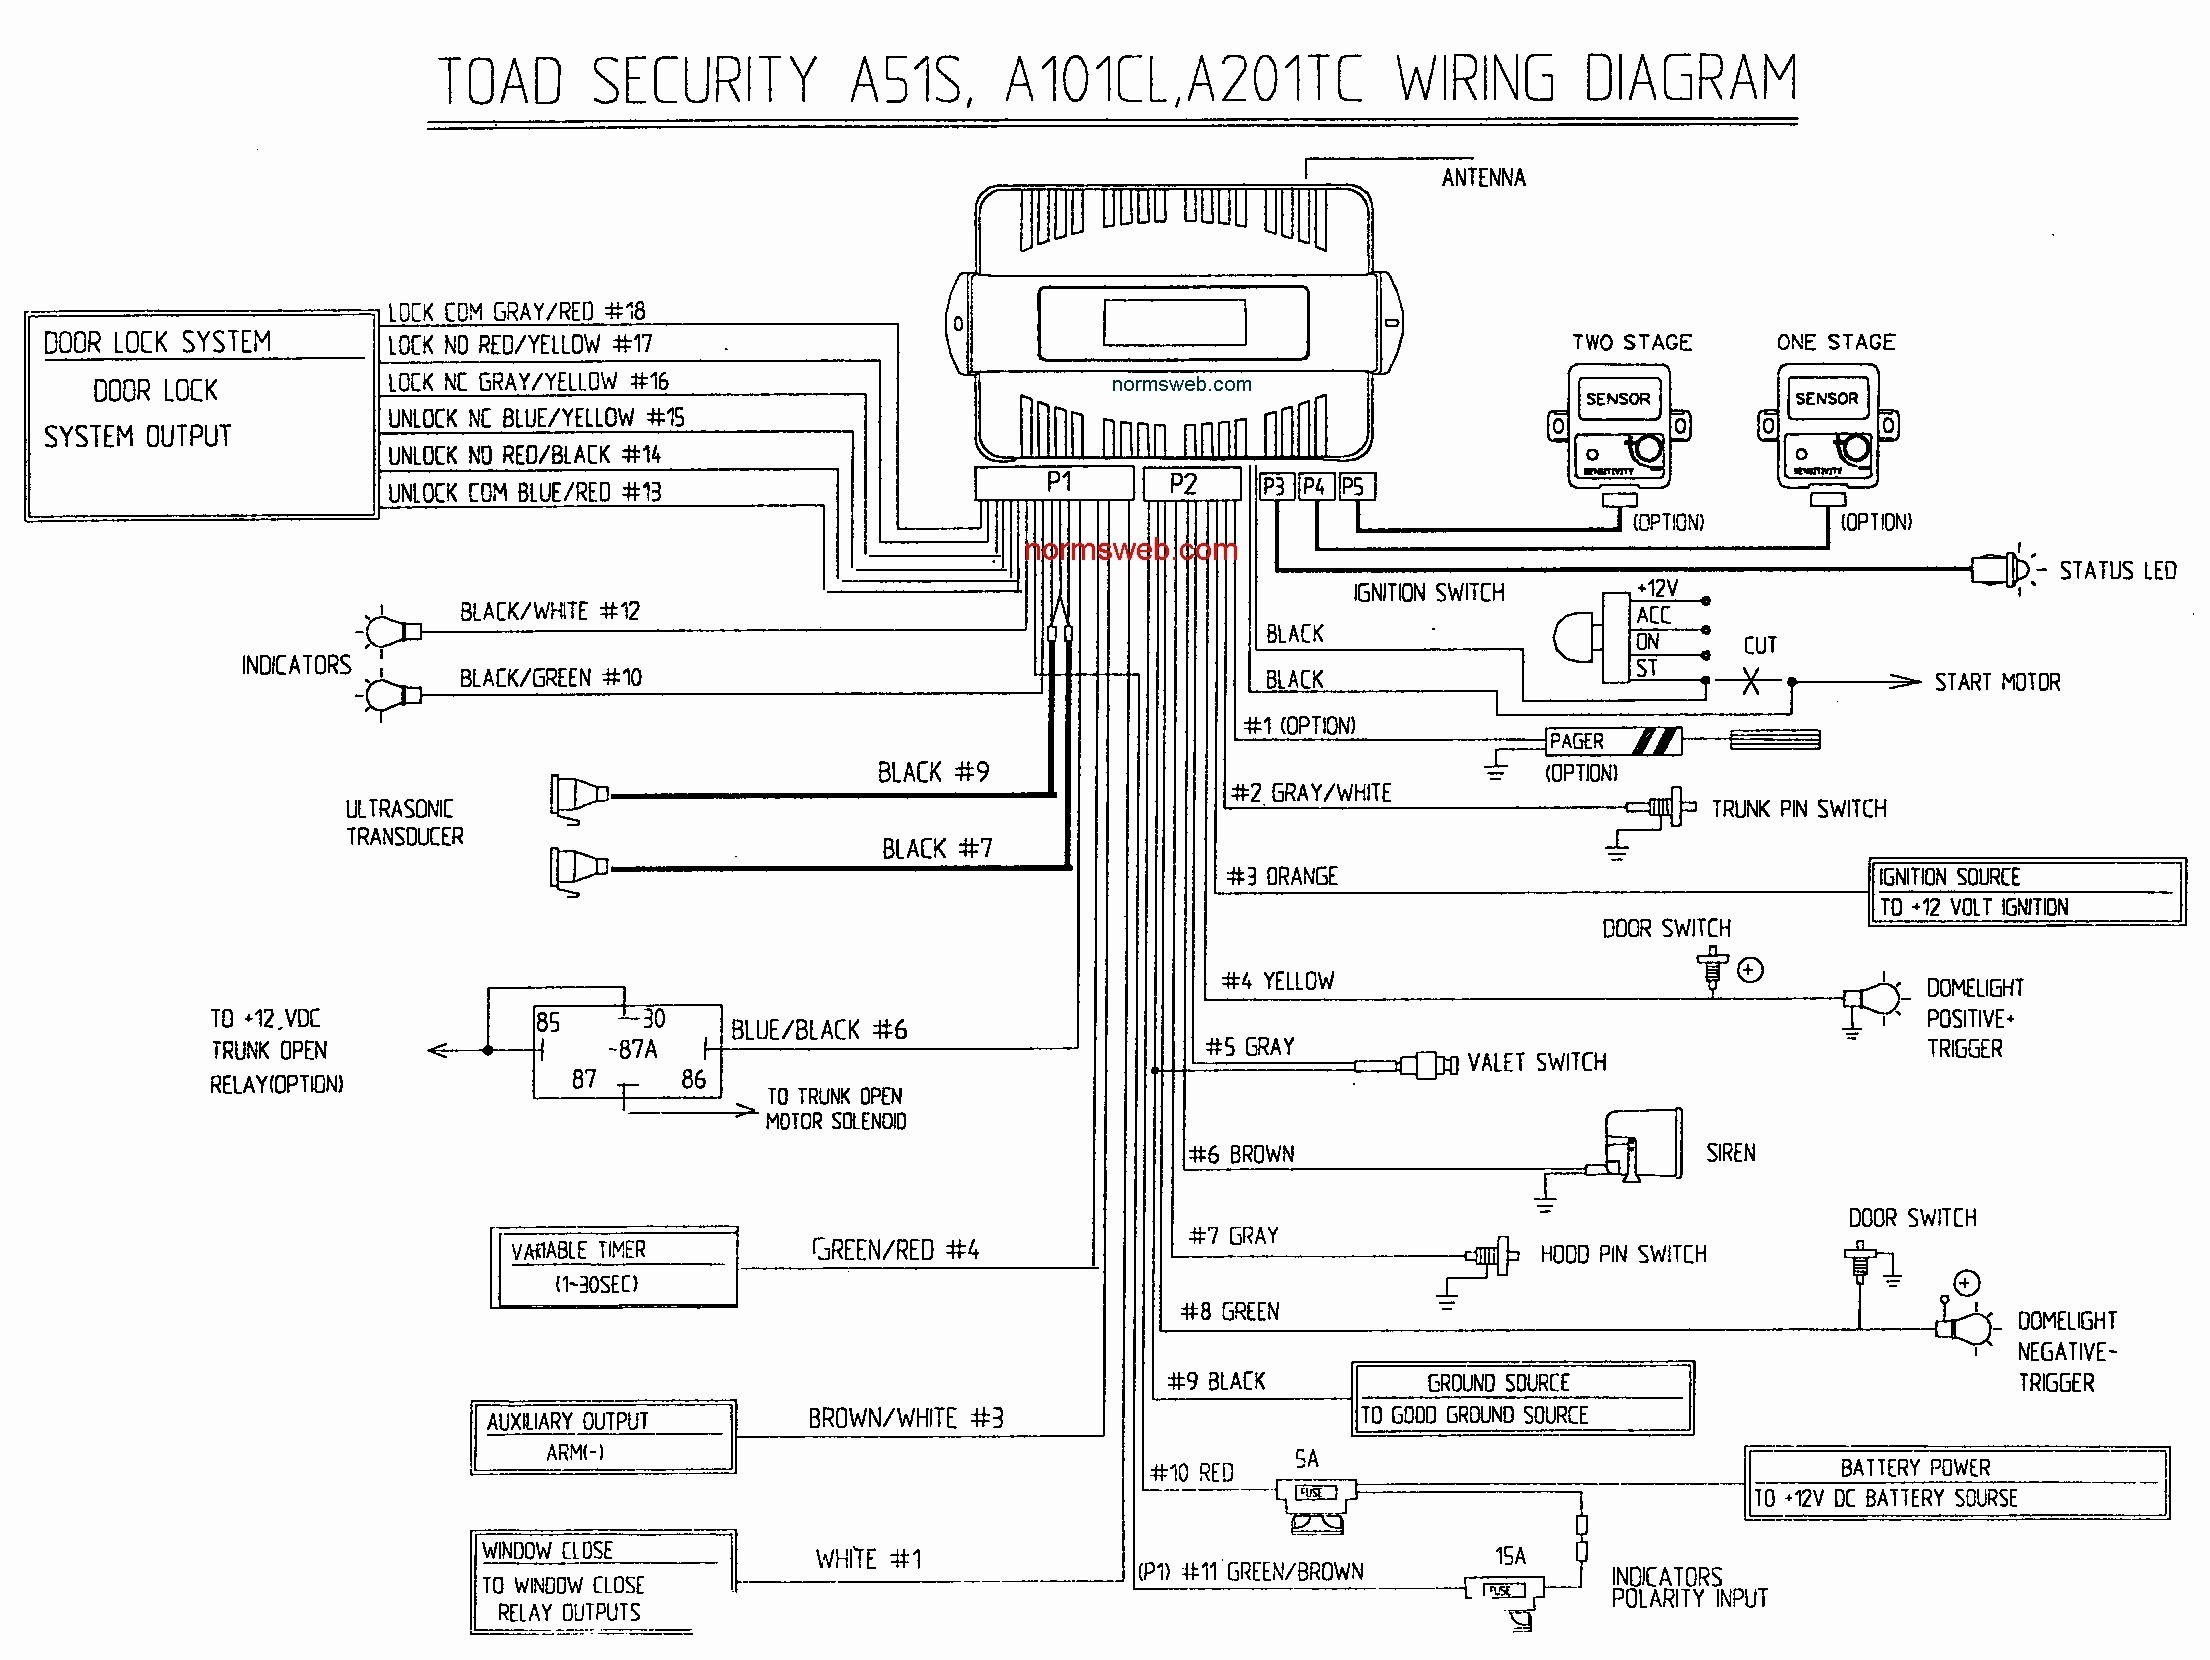 Bulldog Security Wiring Diagrams Wiring Diagram Alarm System Car Refrence Wiring Diagram Alarm System Of Bulldog Security Wiring Diagrams